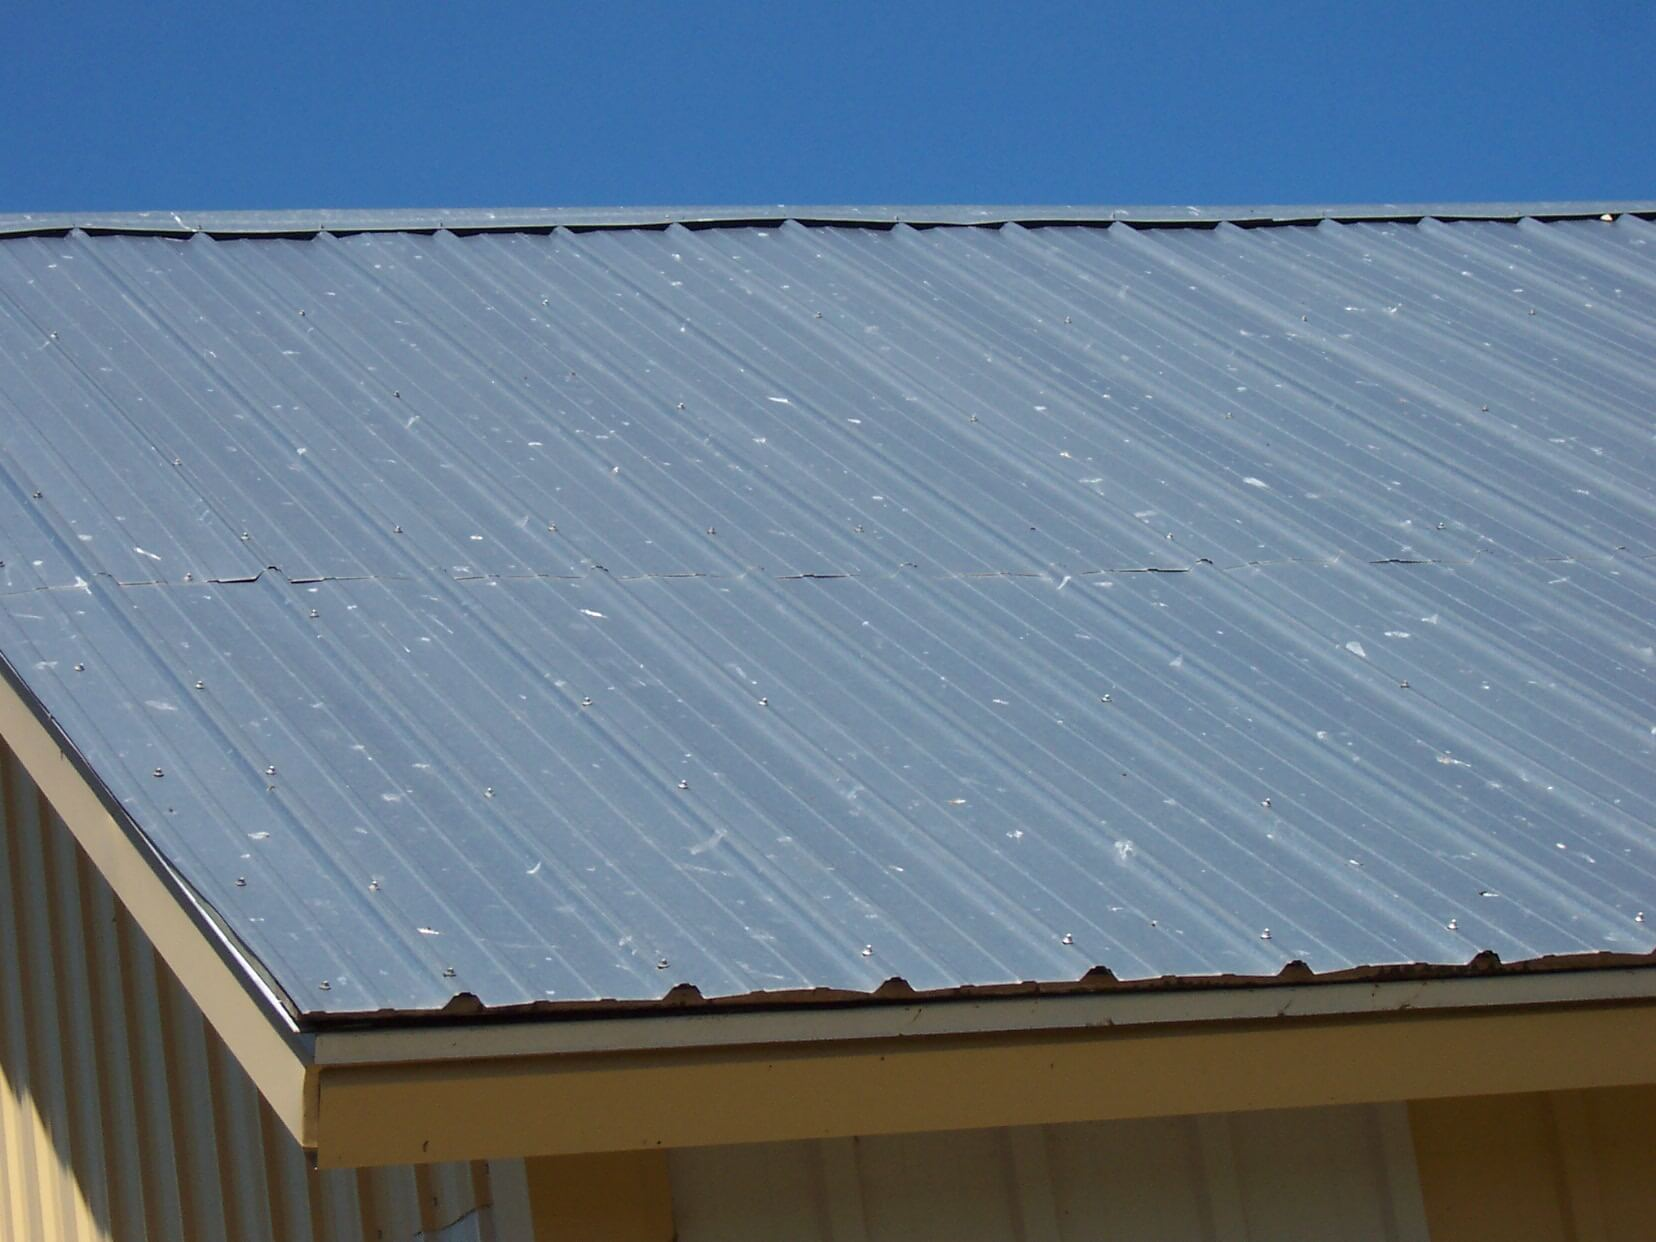 Does A Metal Roof Hold Up To Hail Better Than Shingles